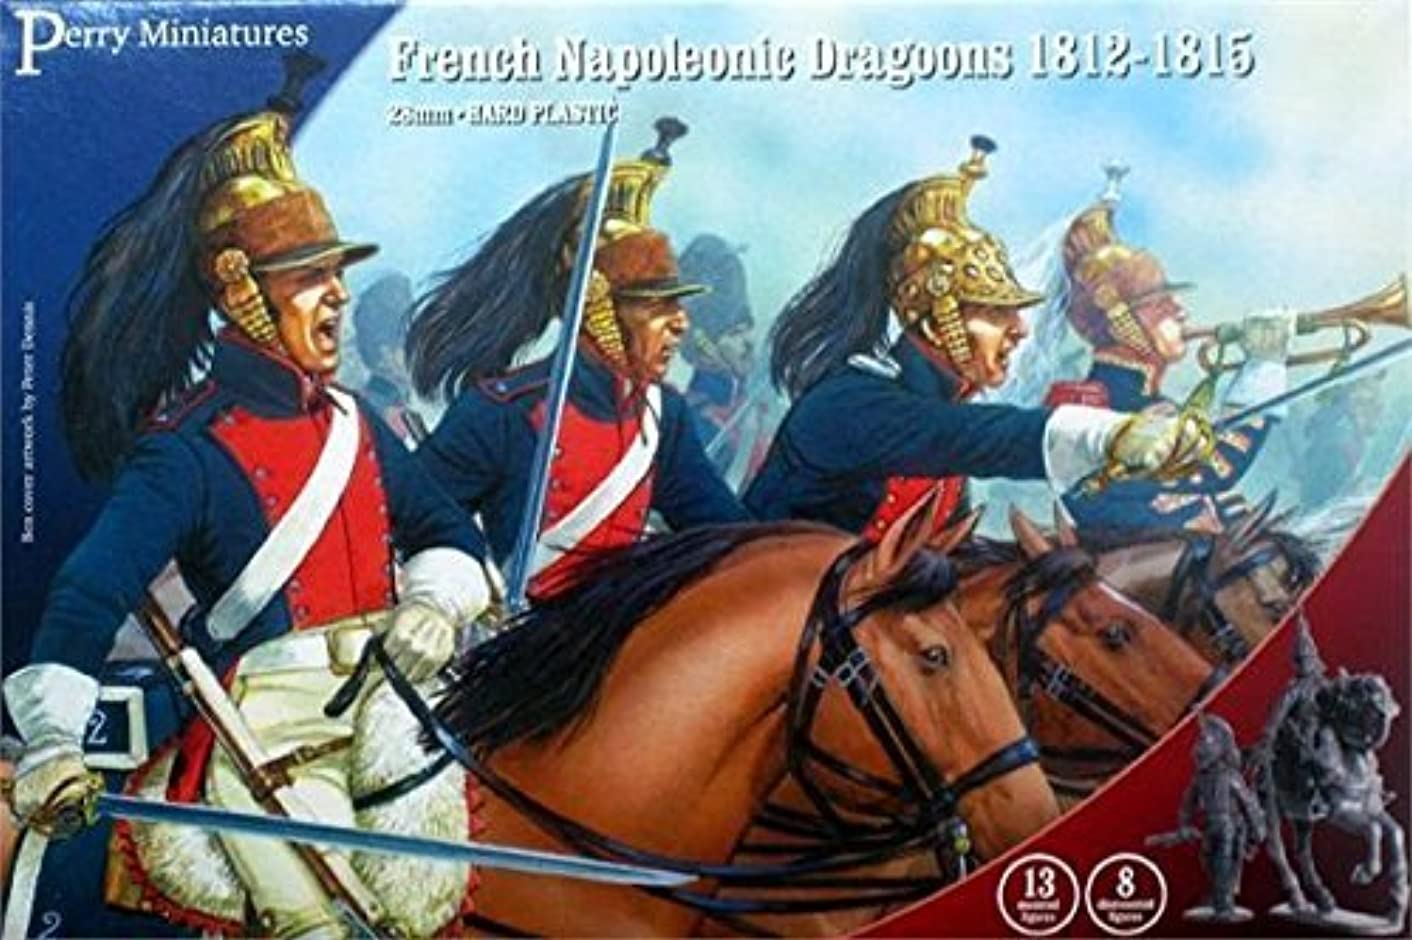 Perry Miniatures FN130 French Napoleonic Dragoons 28 mm Hard Plastic Figures x13 by Perry Miniatures